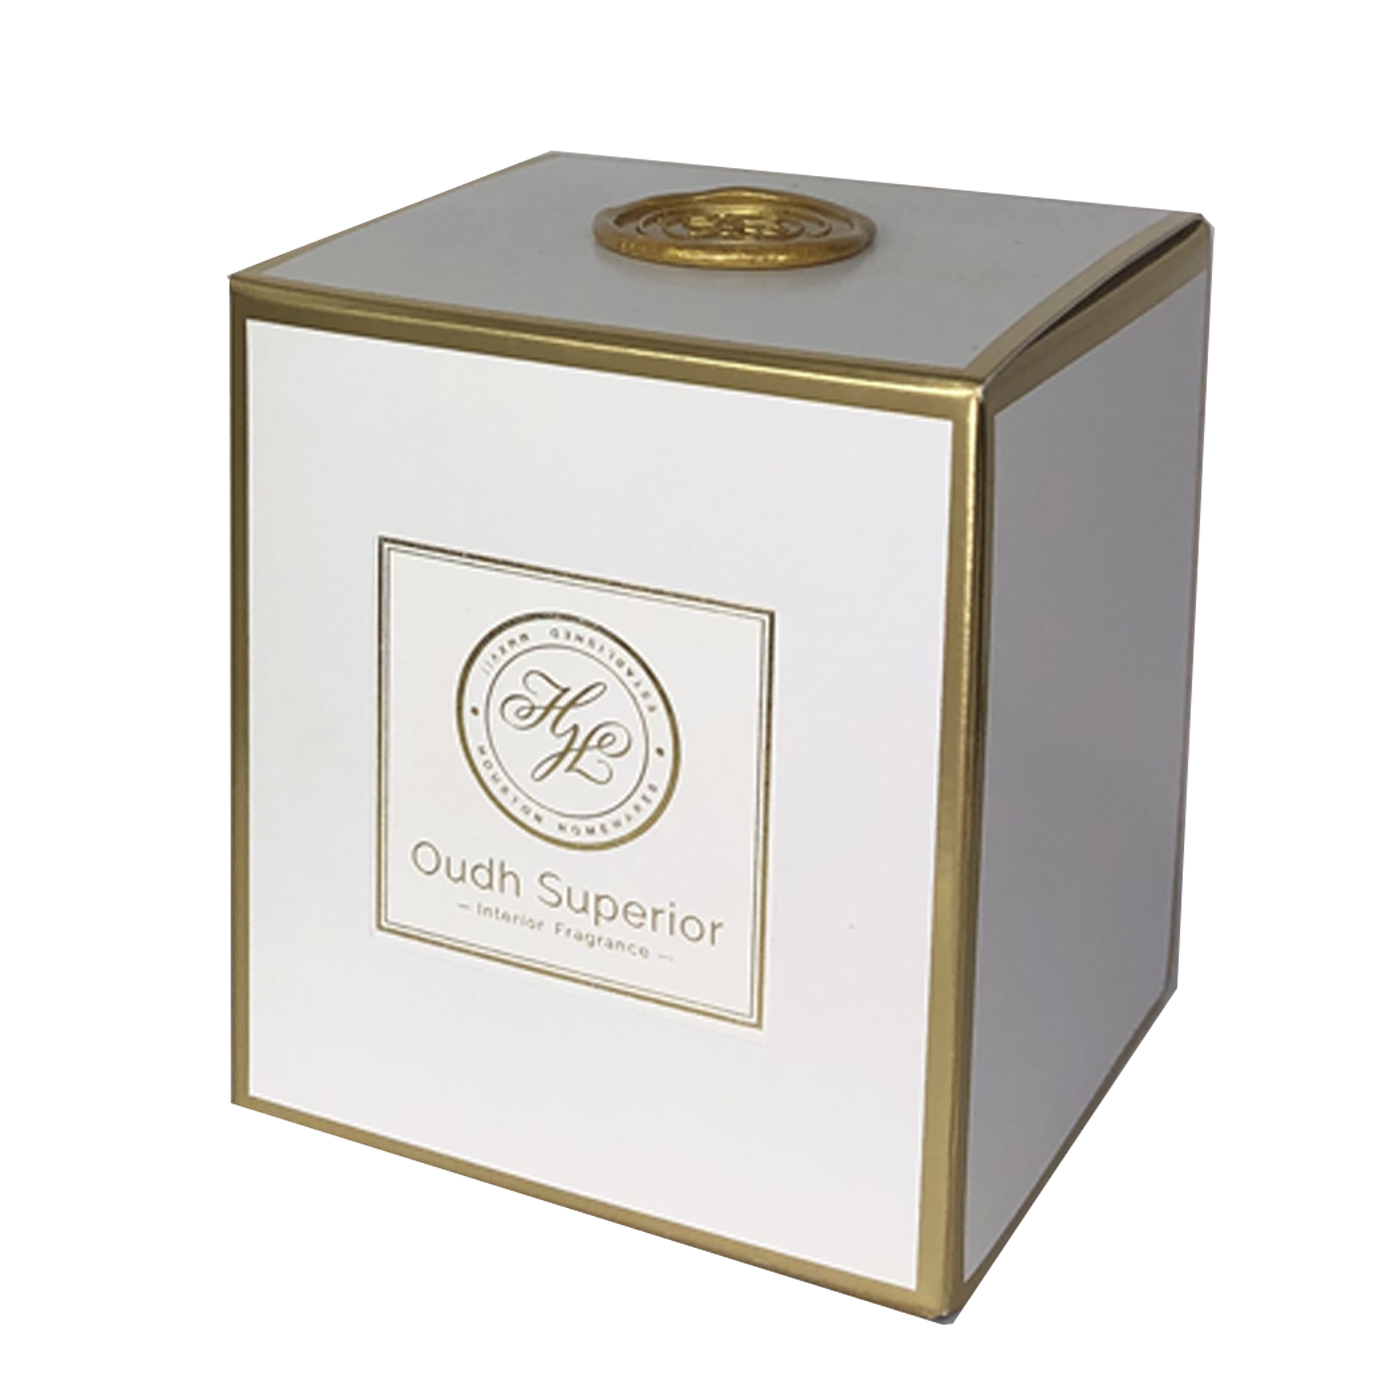 1111 Oudh Superior luxury soy wax candle